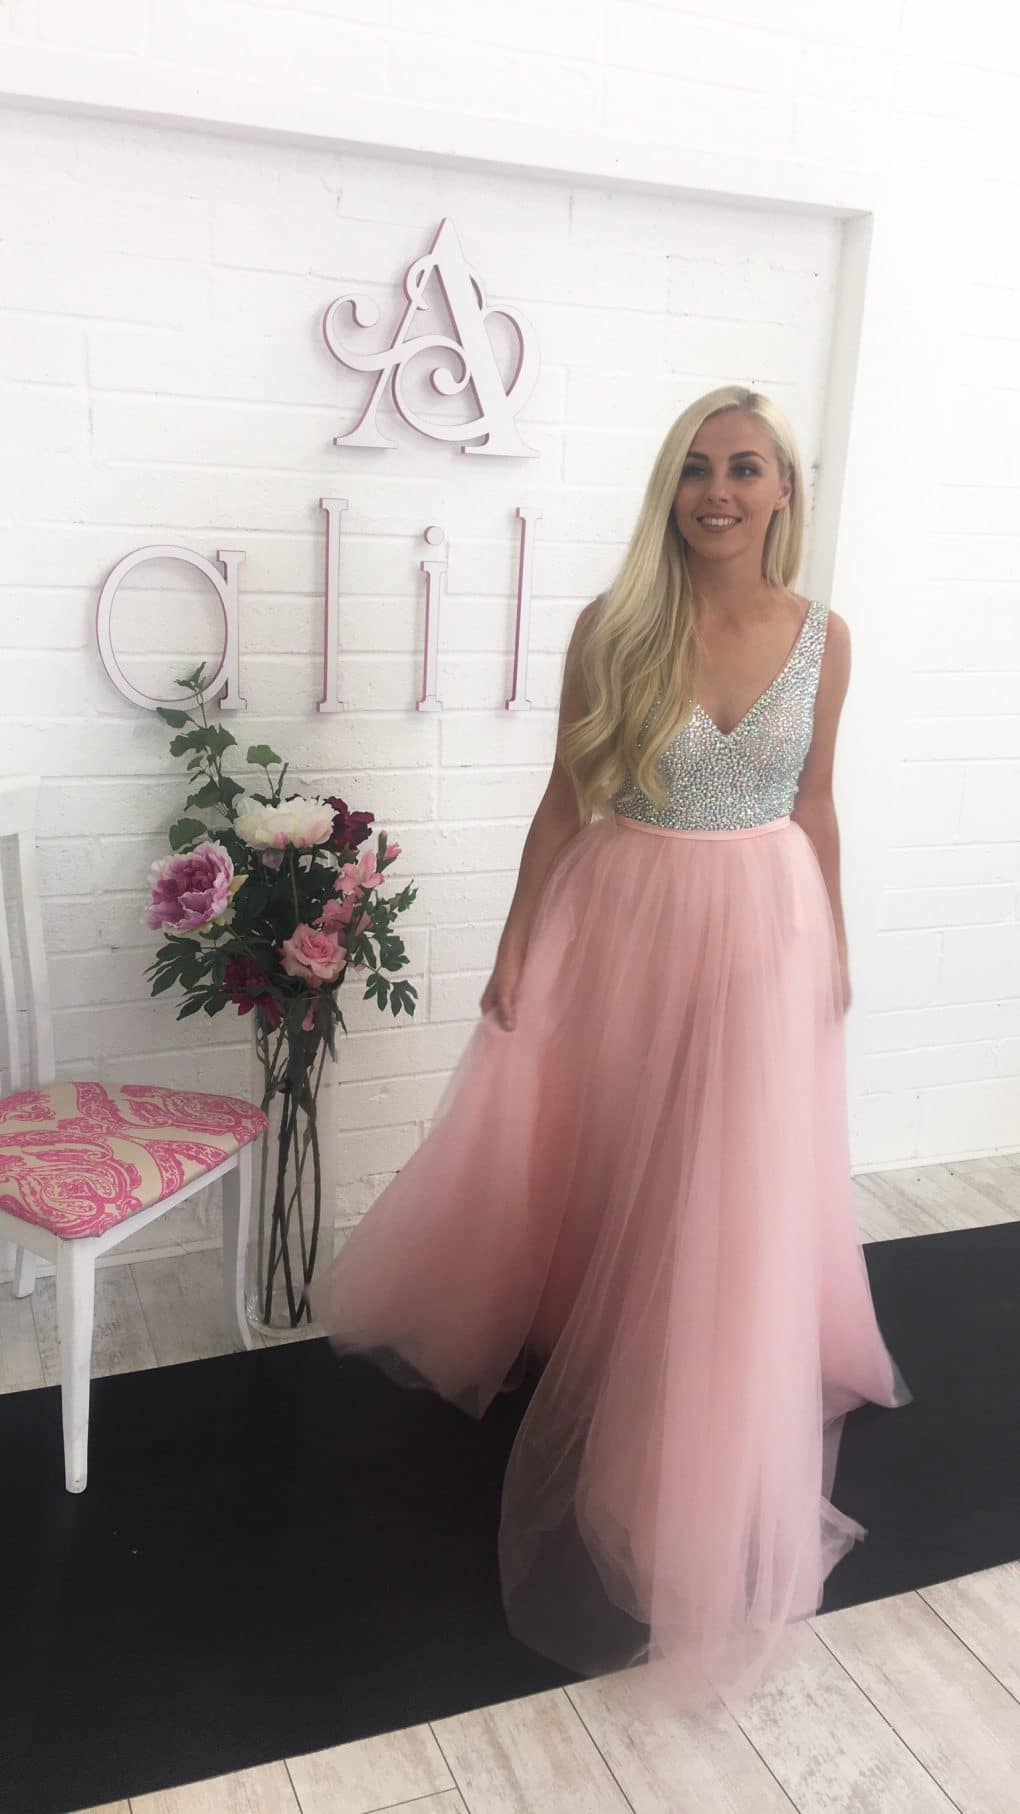 Gino-Cerruti-Pink-Princess-Gown-AnnMaire